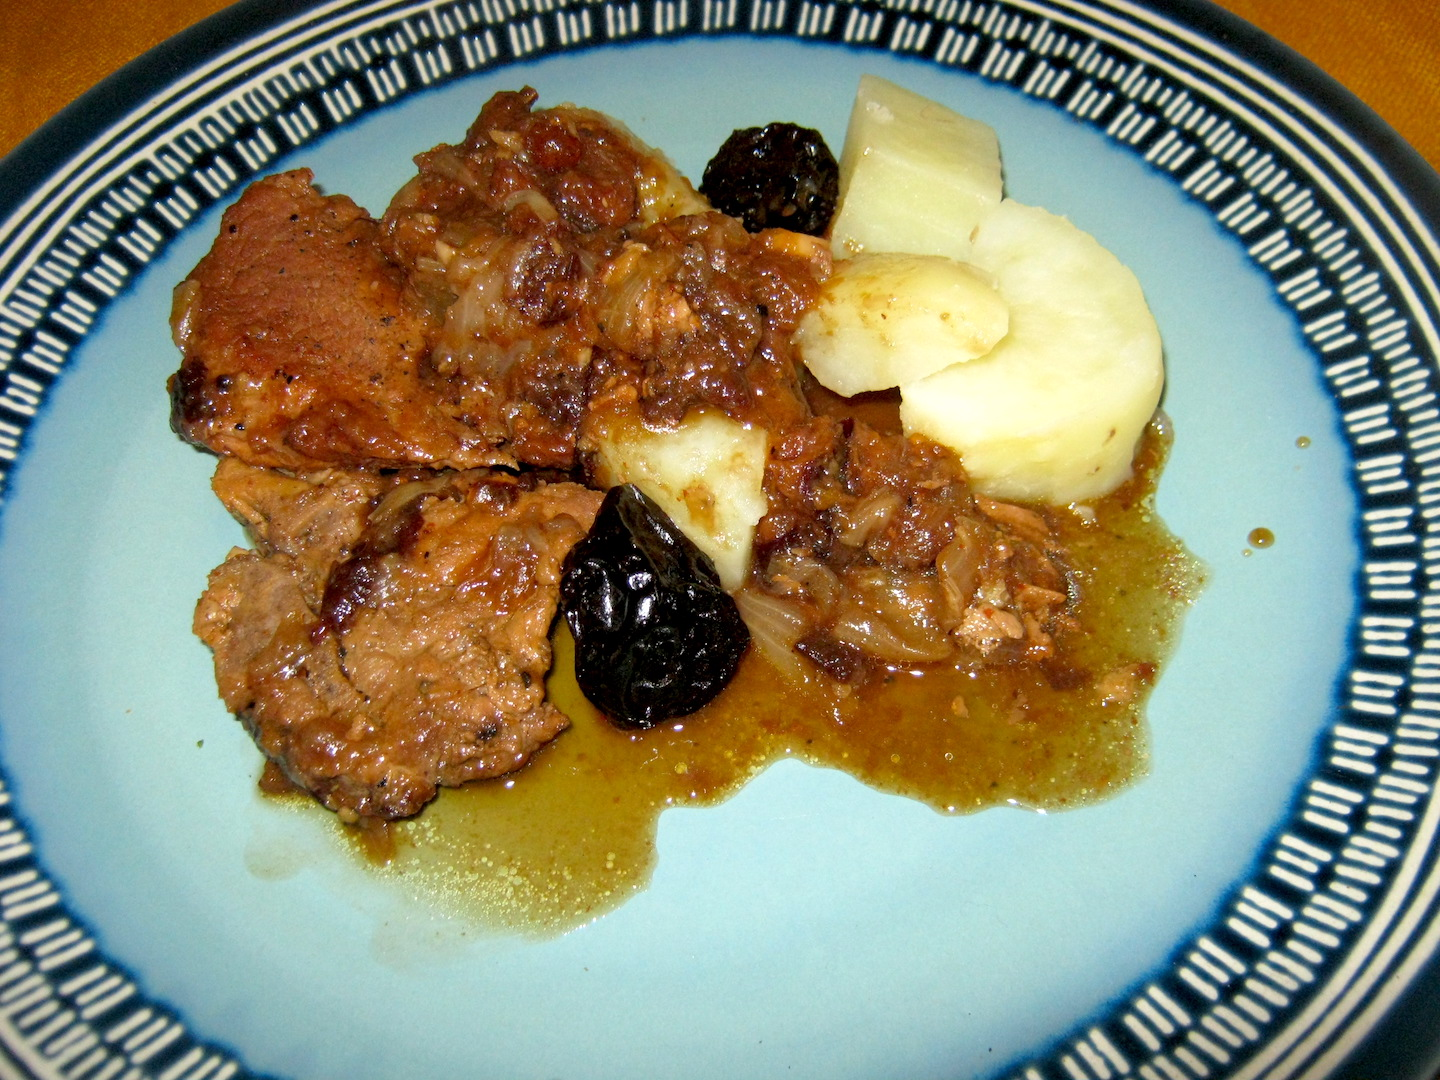 Pork neck chops in prune sauce on a plate